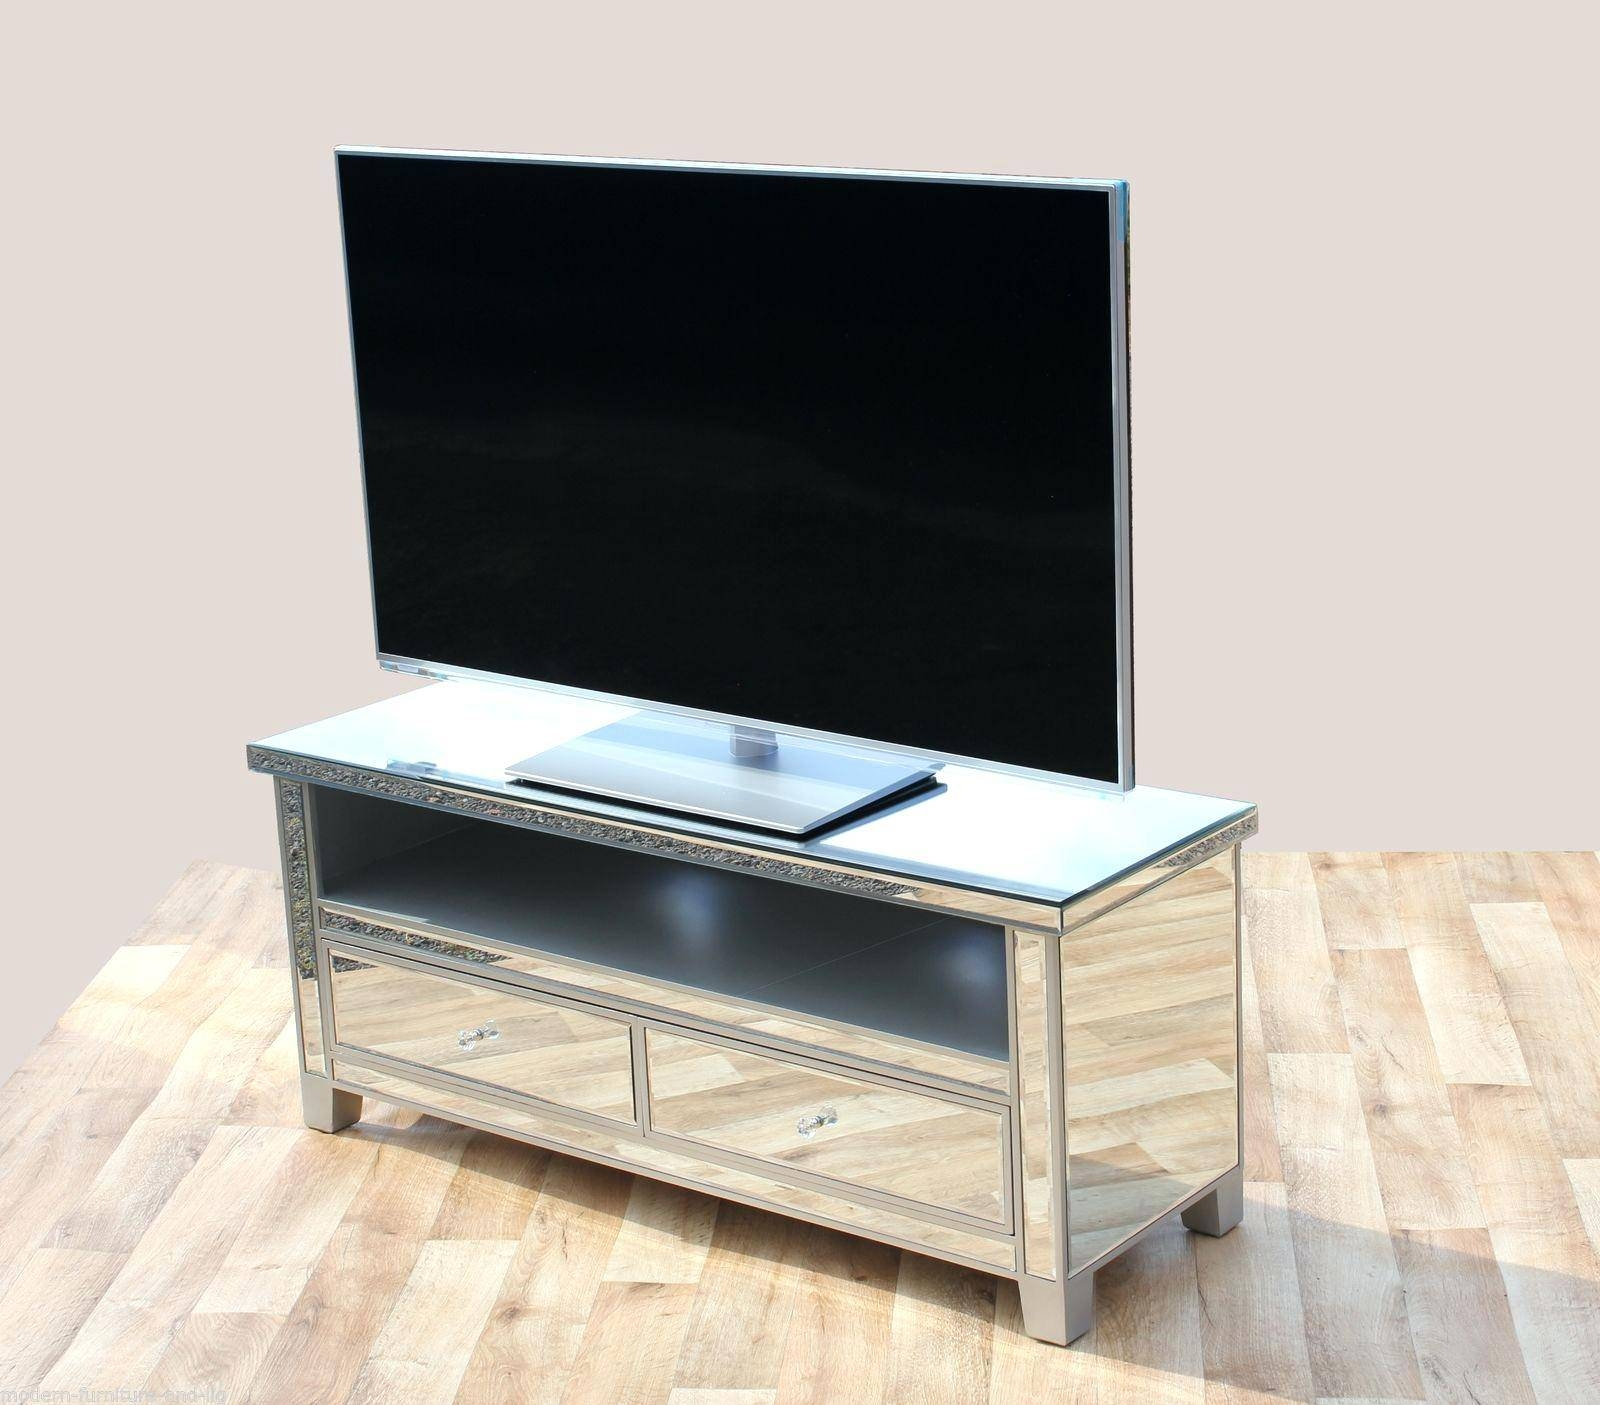 Tv Stand : Full Image For Mirrored Tv Cabinet Living Room pertaining to Mirrored Tv Cabinets (Image 12 of 15)